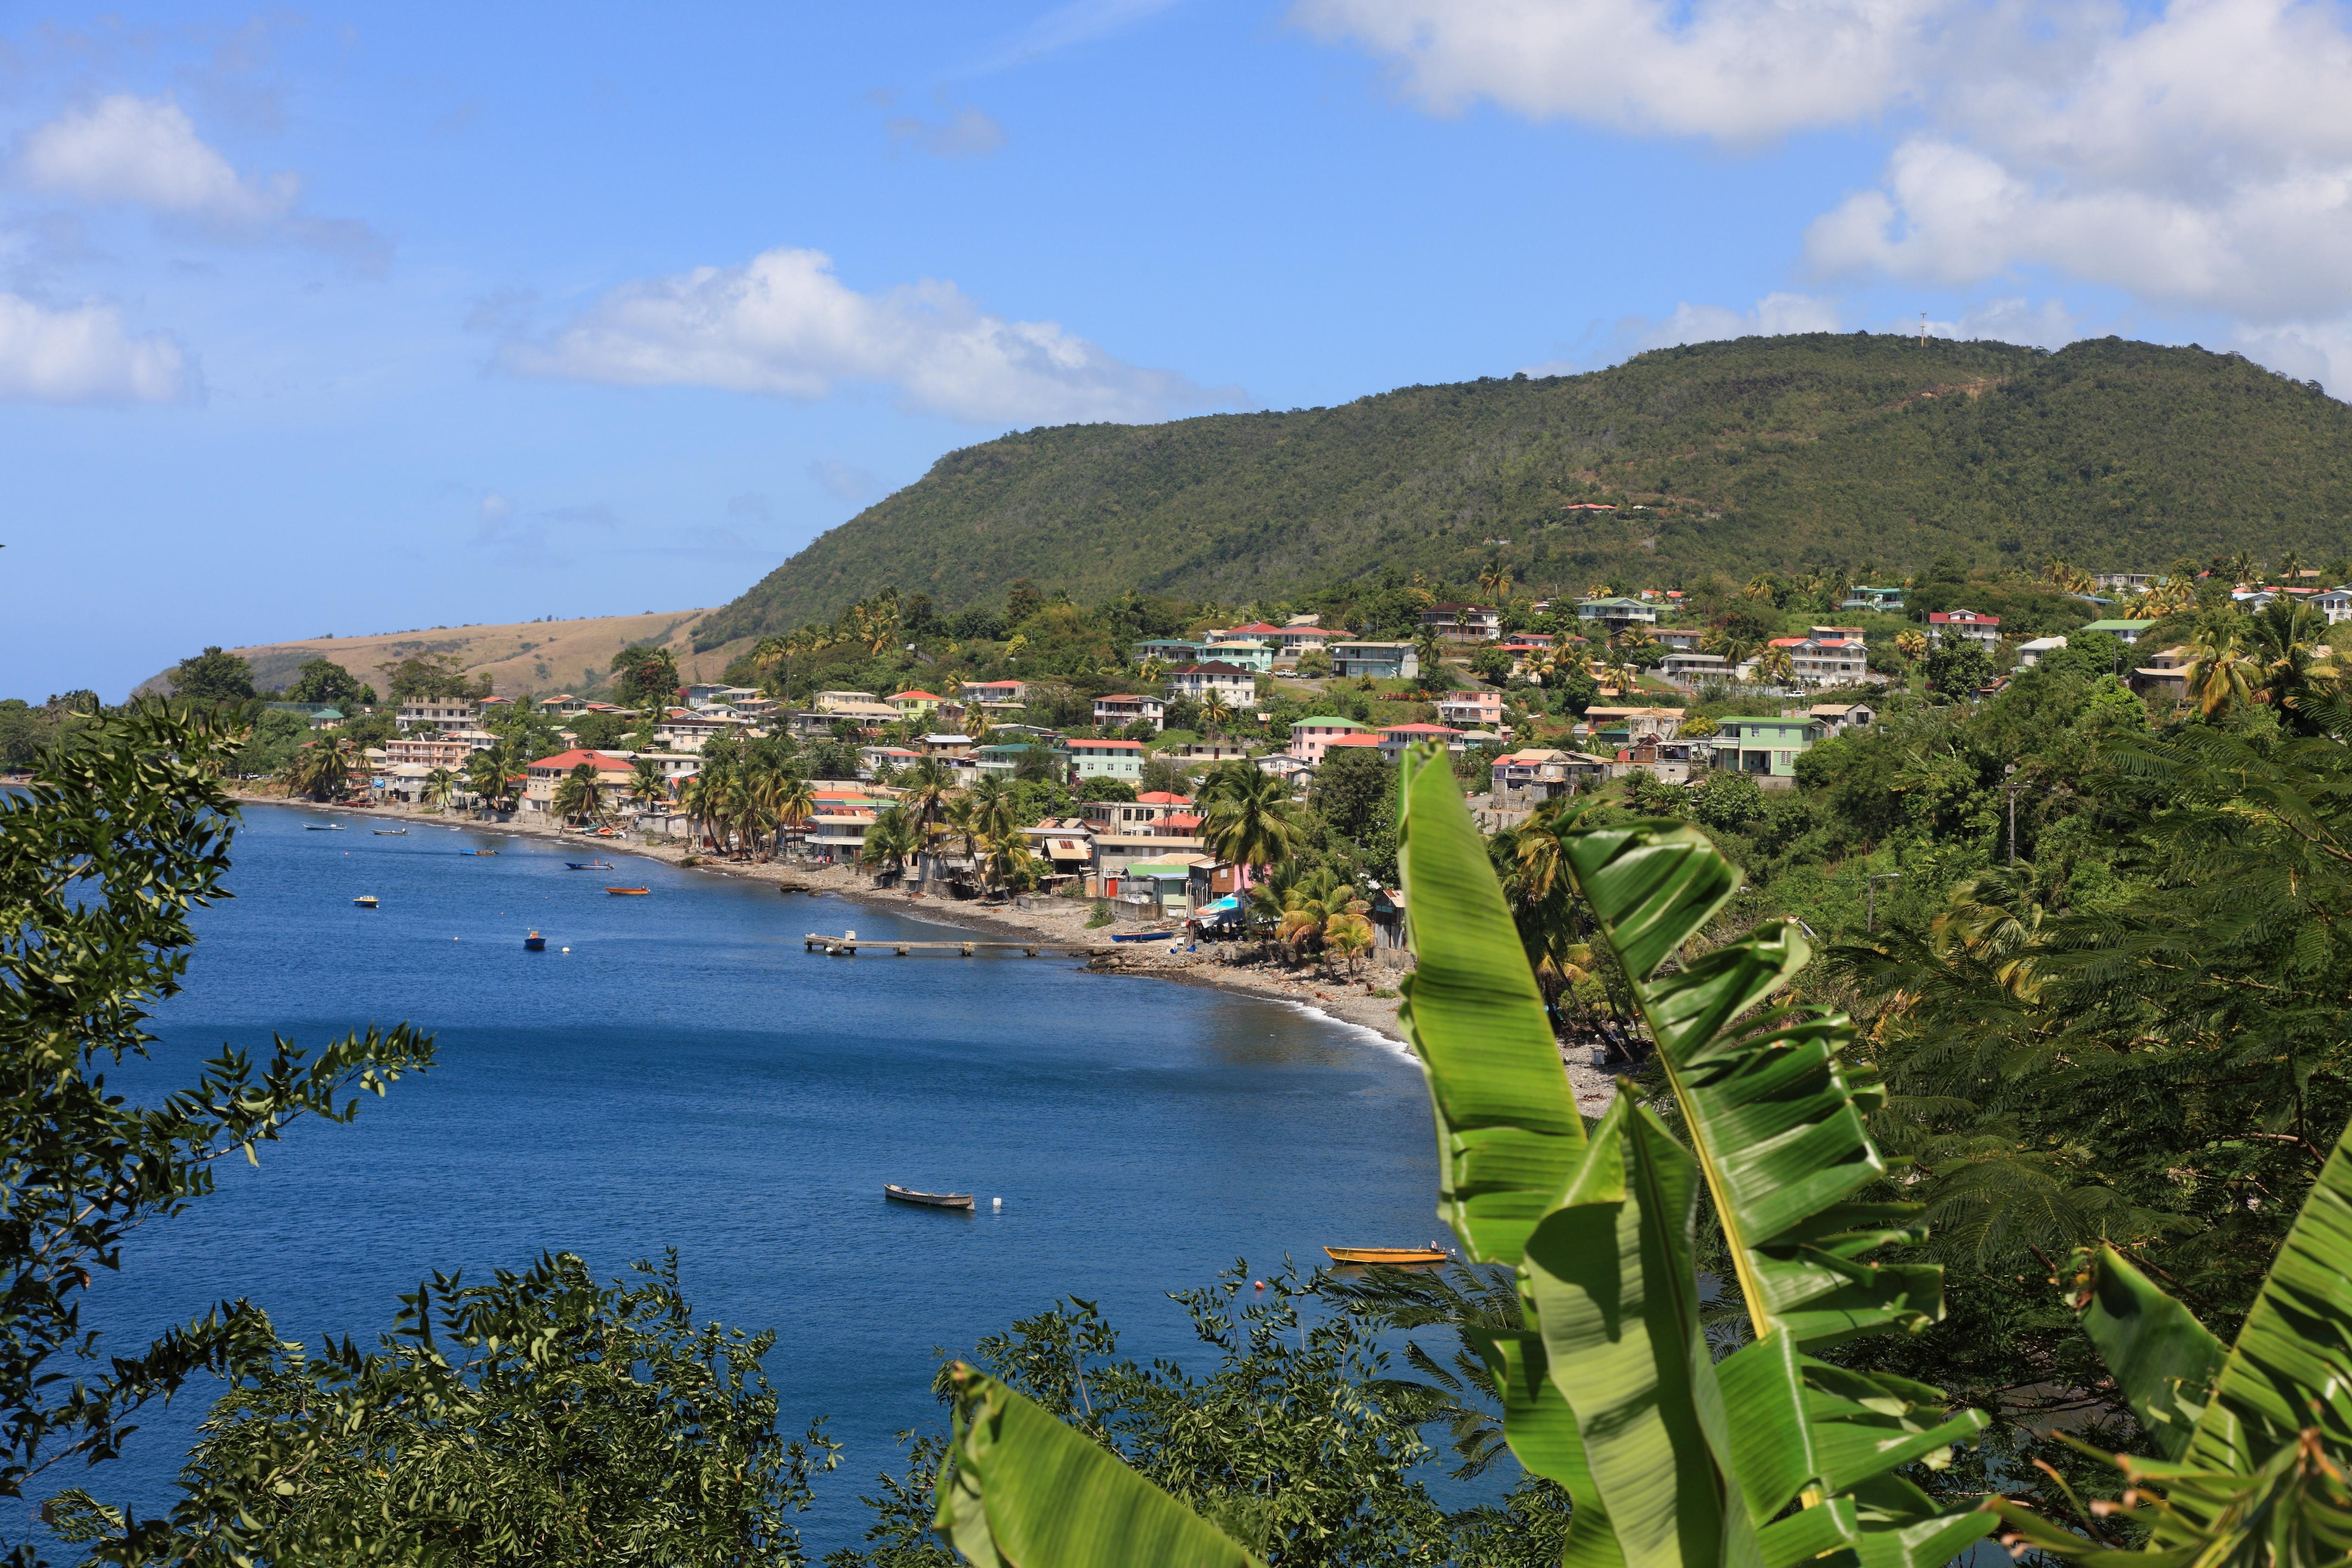 How to Spend 1 Day in Dominica